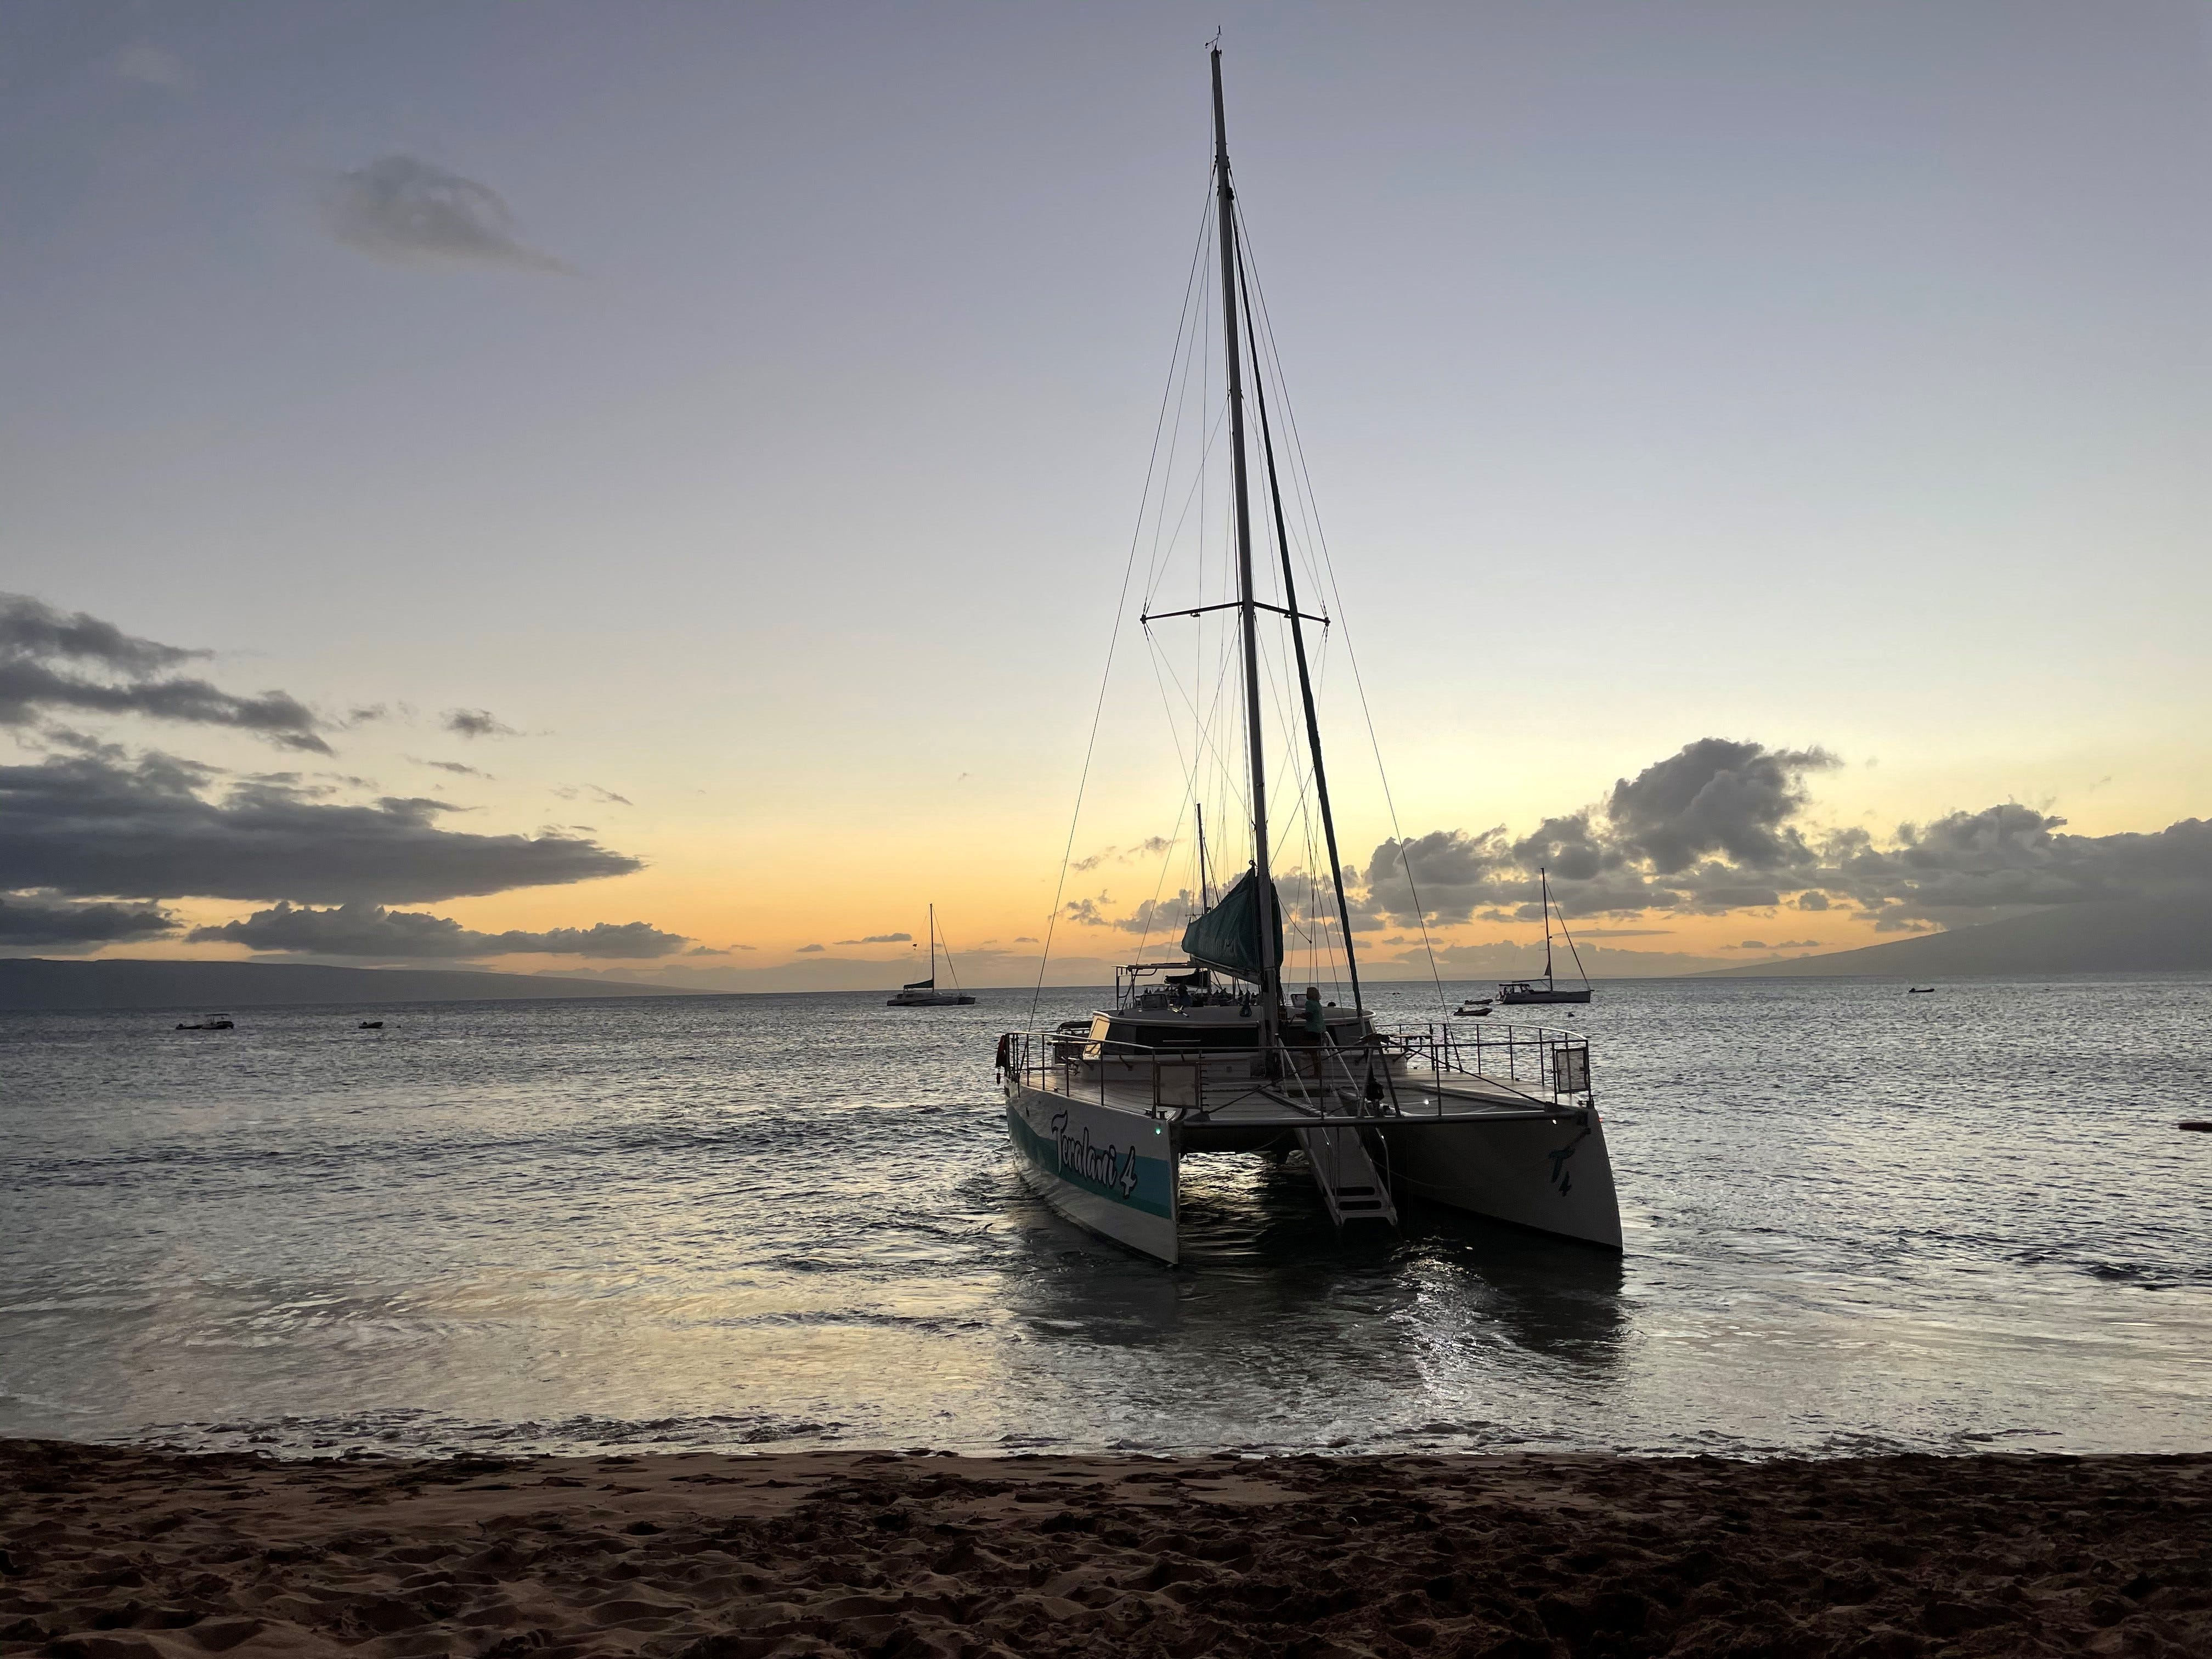 Visiting Maui this fall? Forget about indoor dining at restaurants, bars unless you re vaccinated.